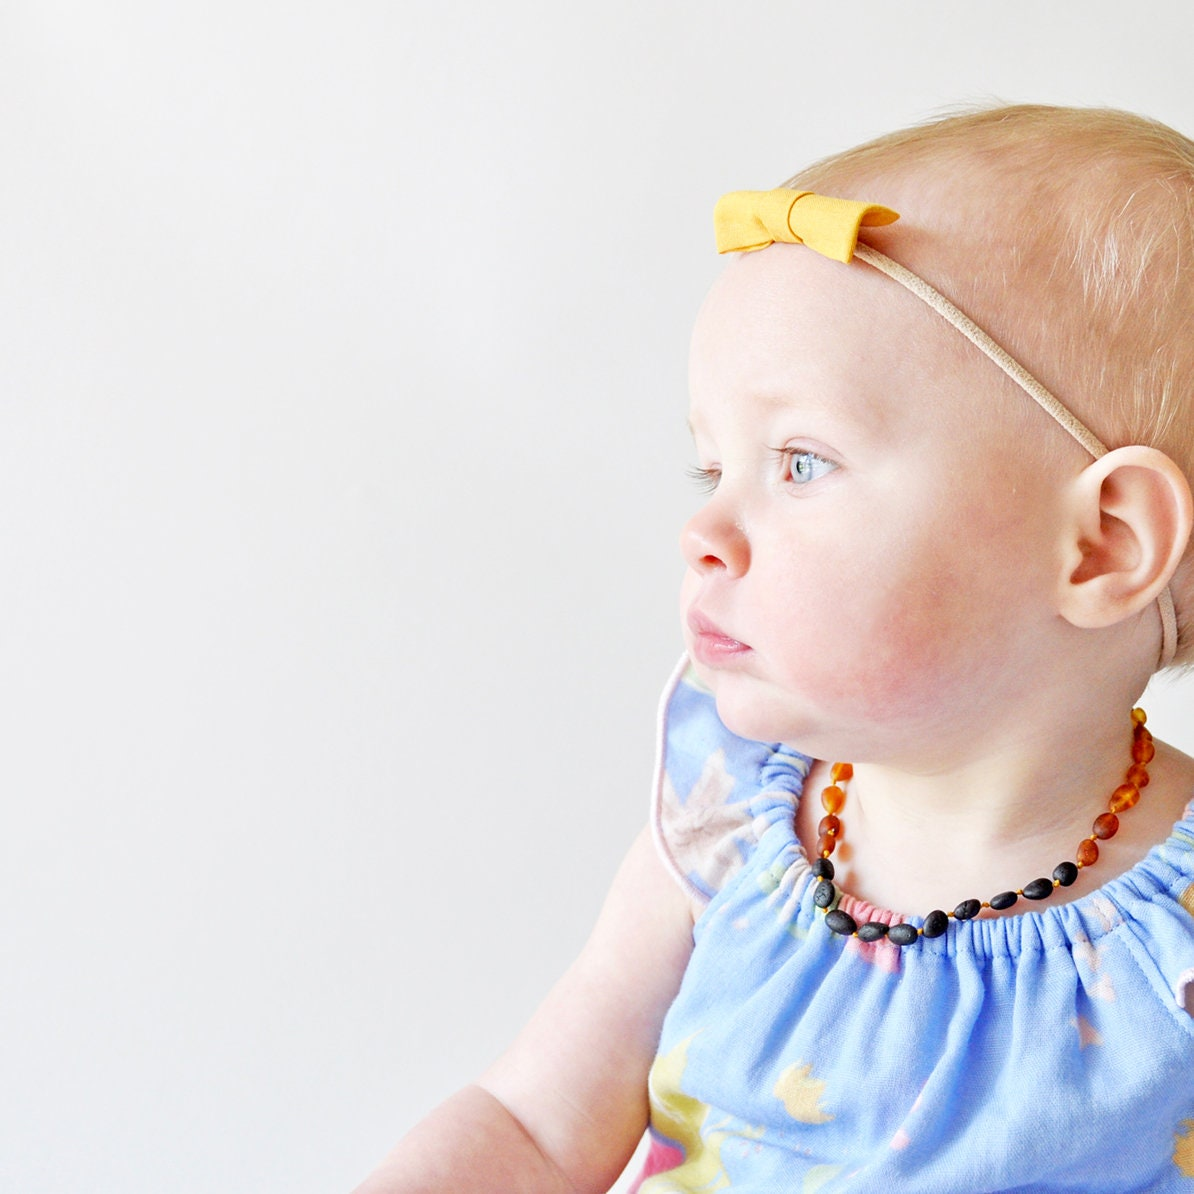 Amber Teething Necklace For Baby Teething Necklace